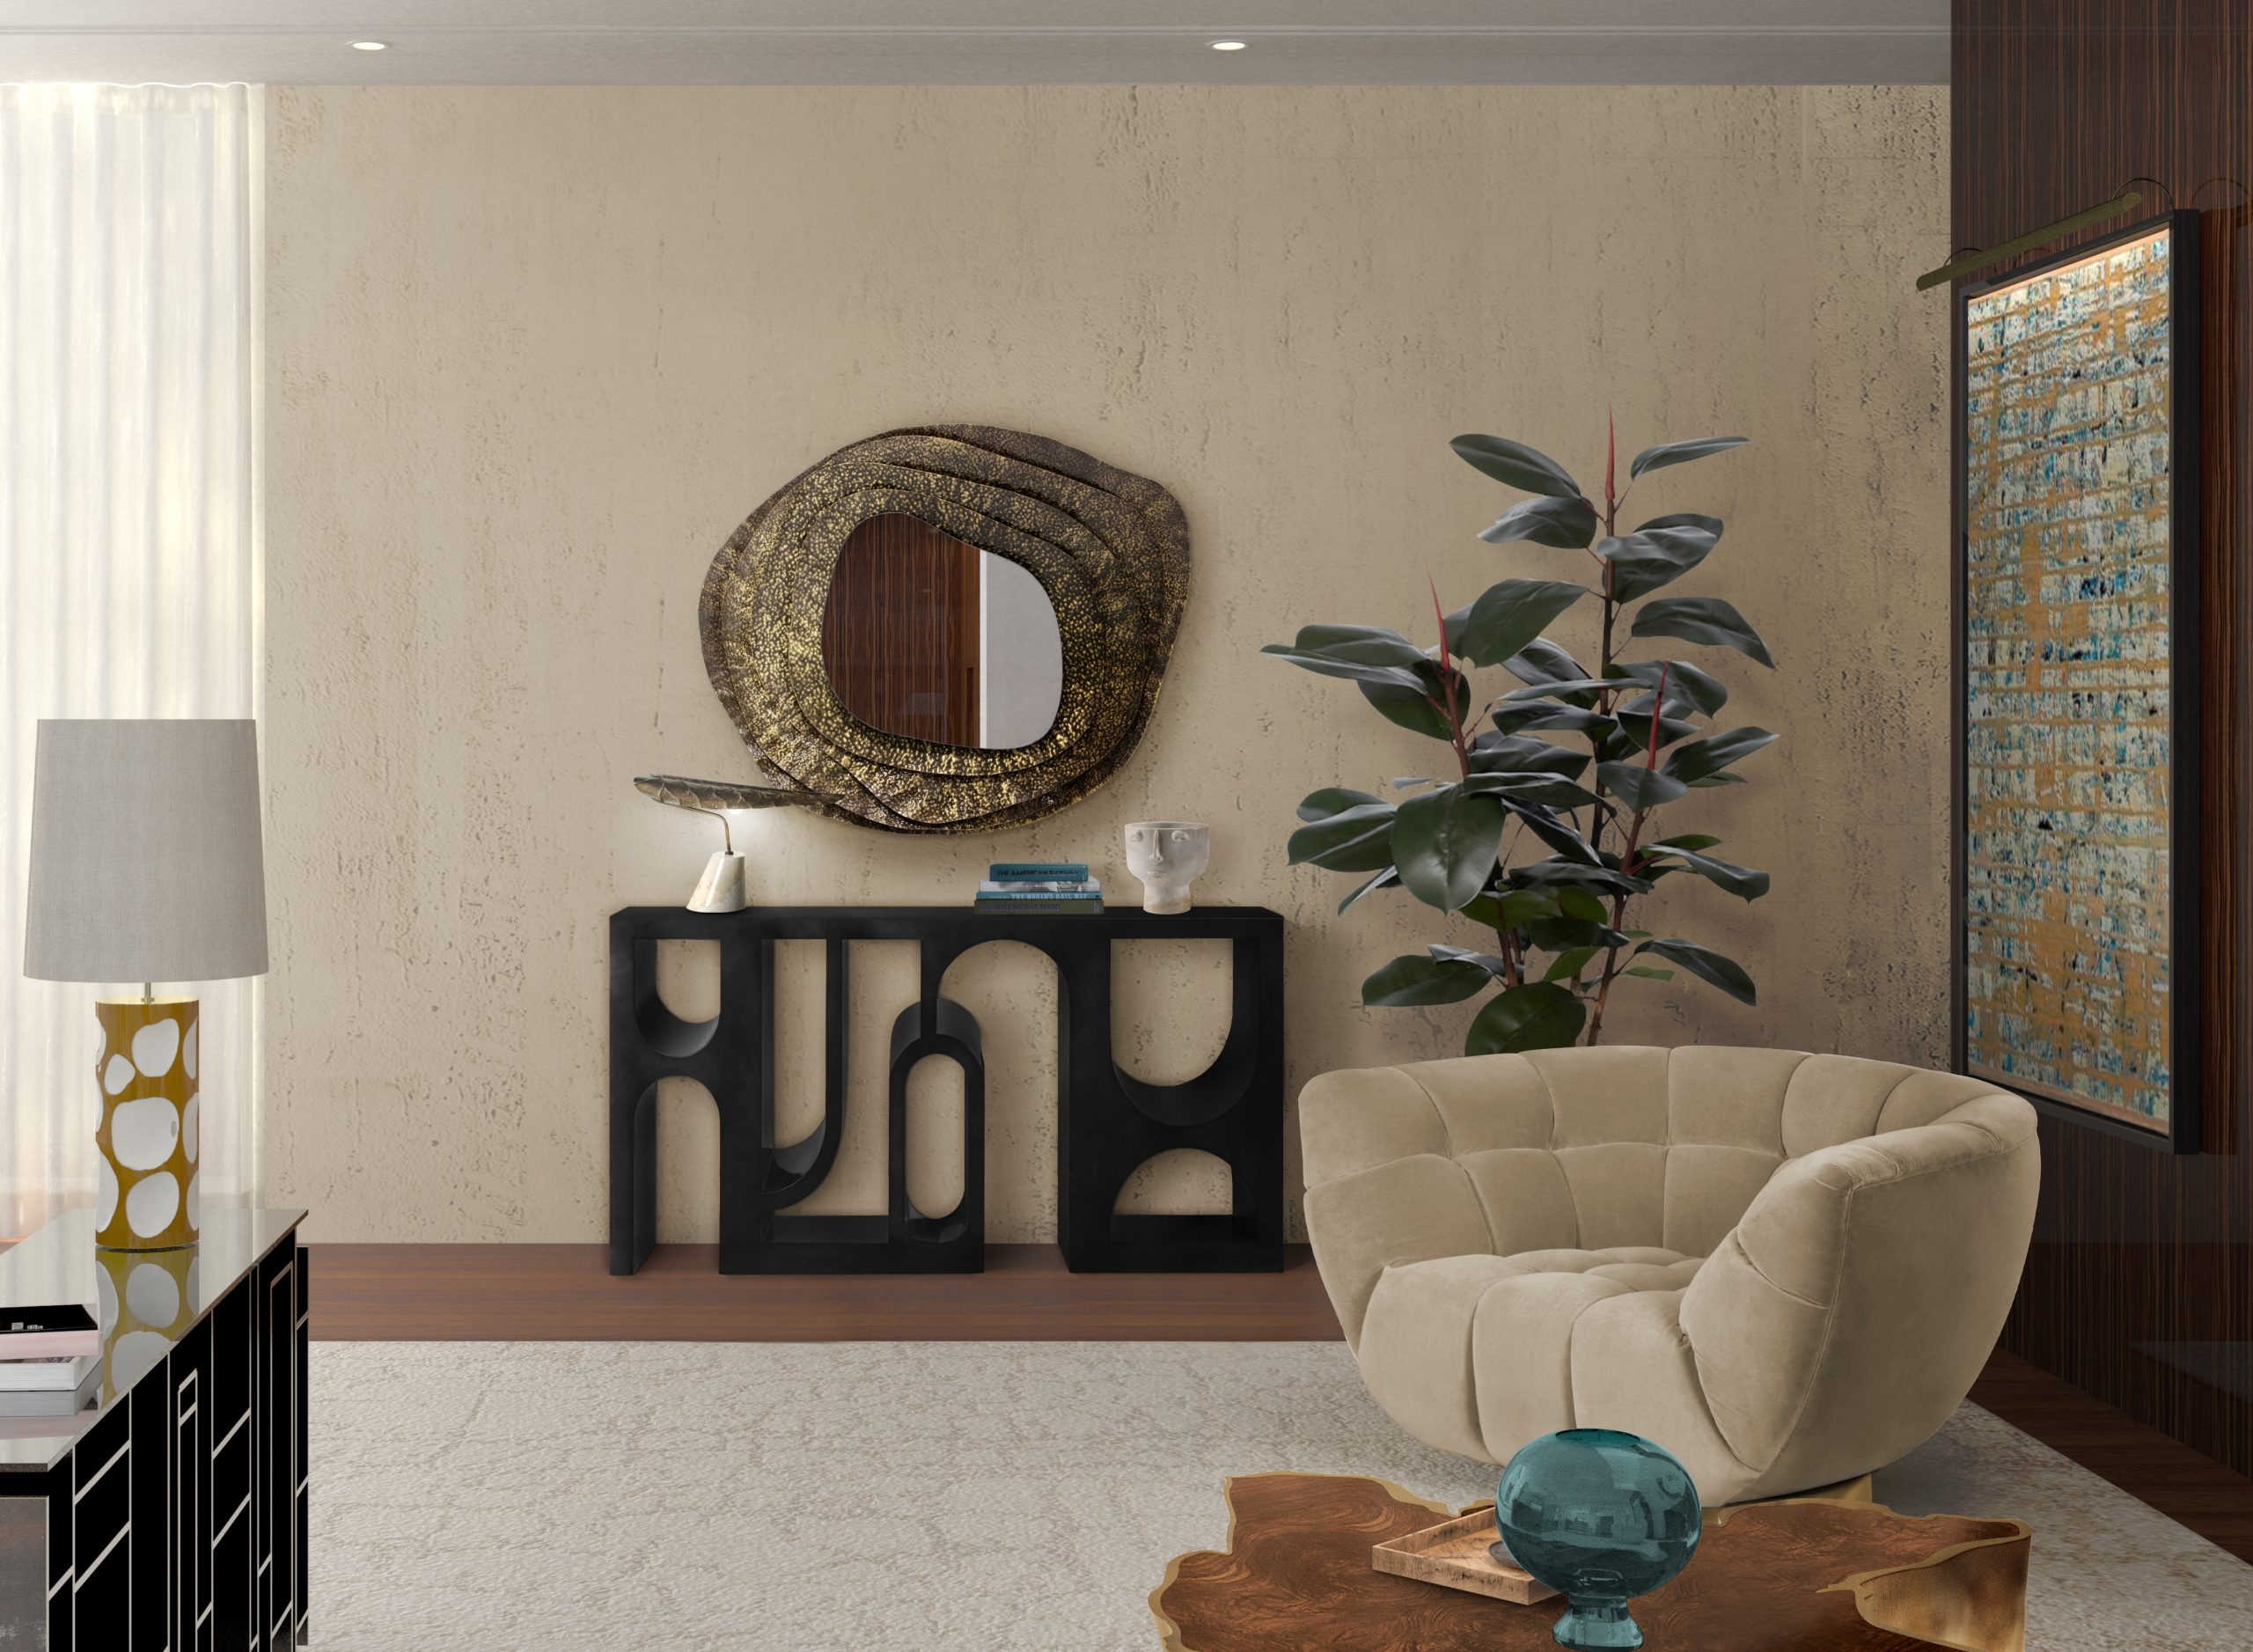 Round Mirrors: A feeling of Sophistication